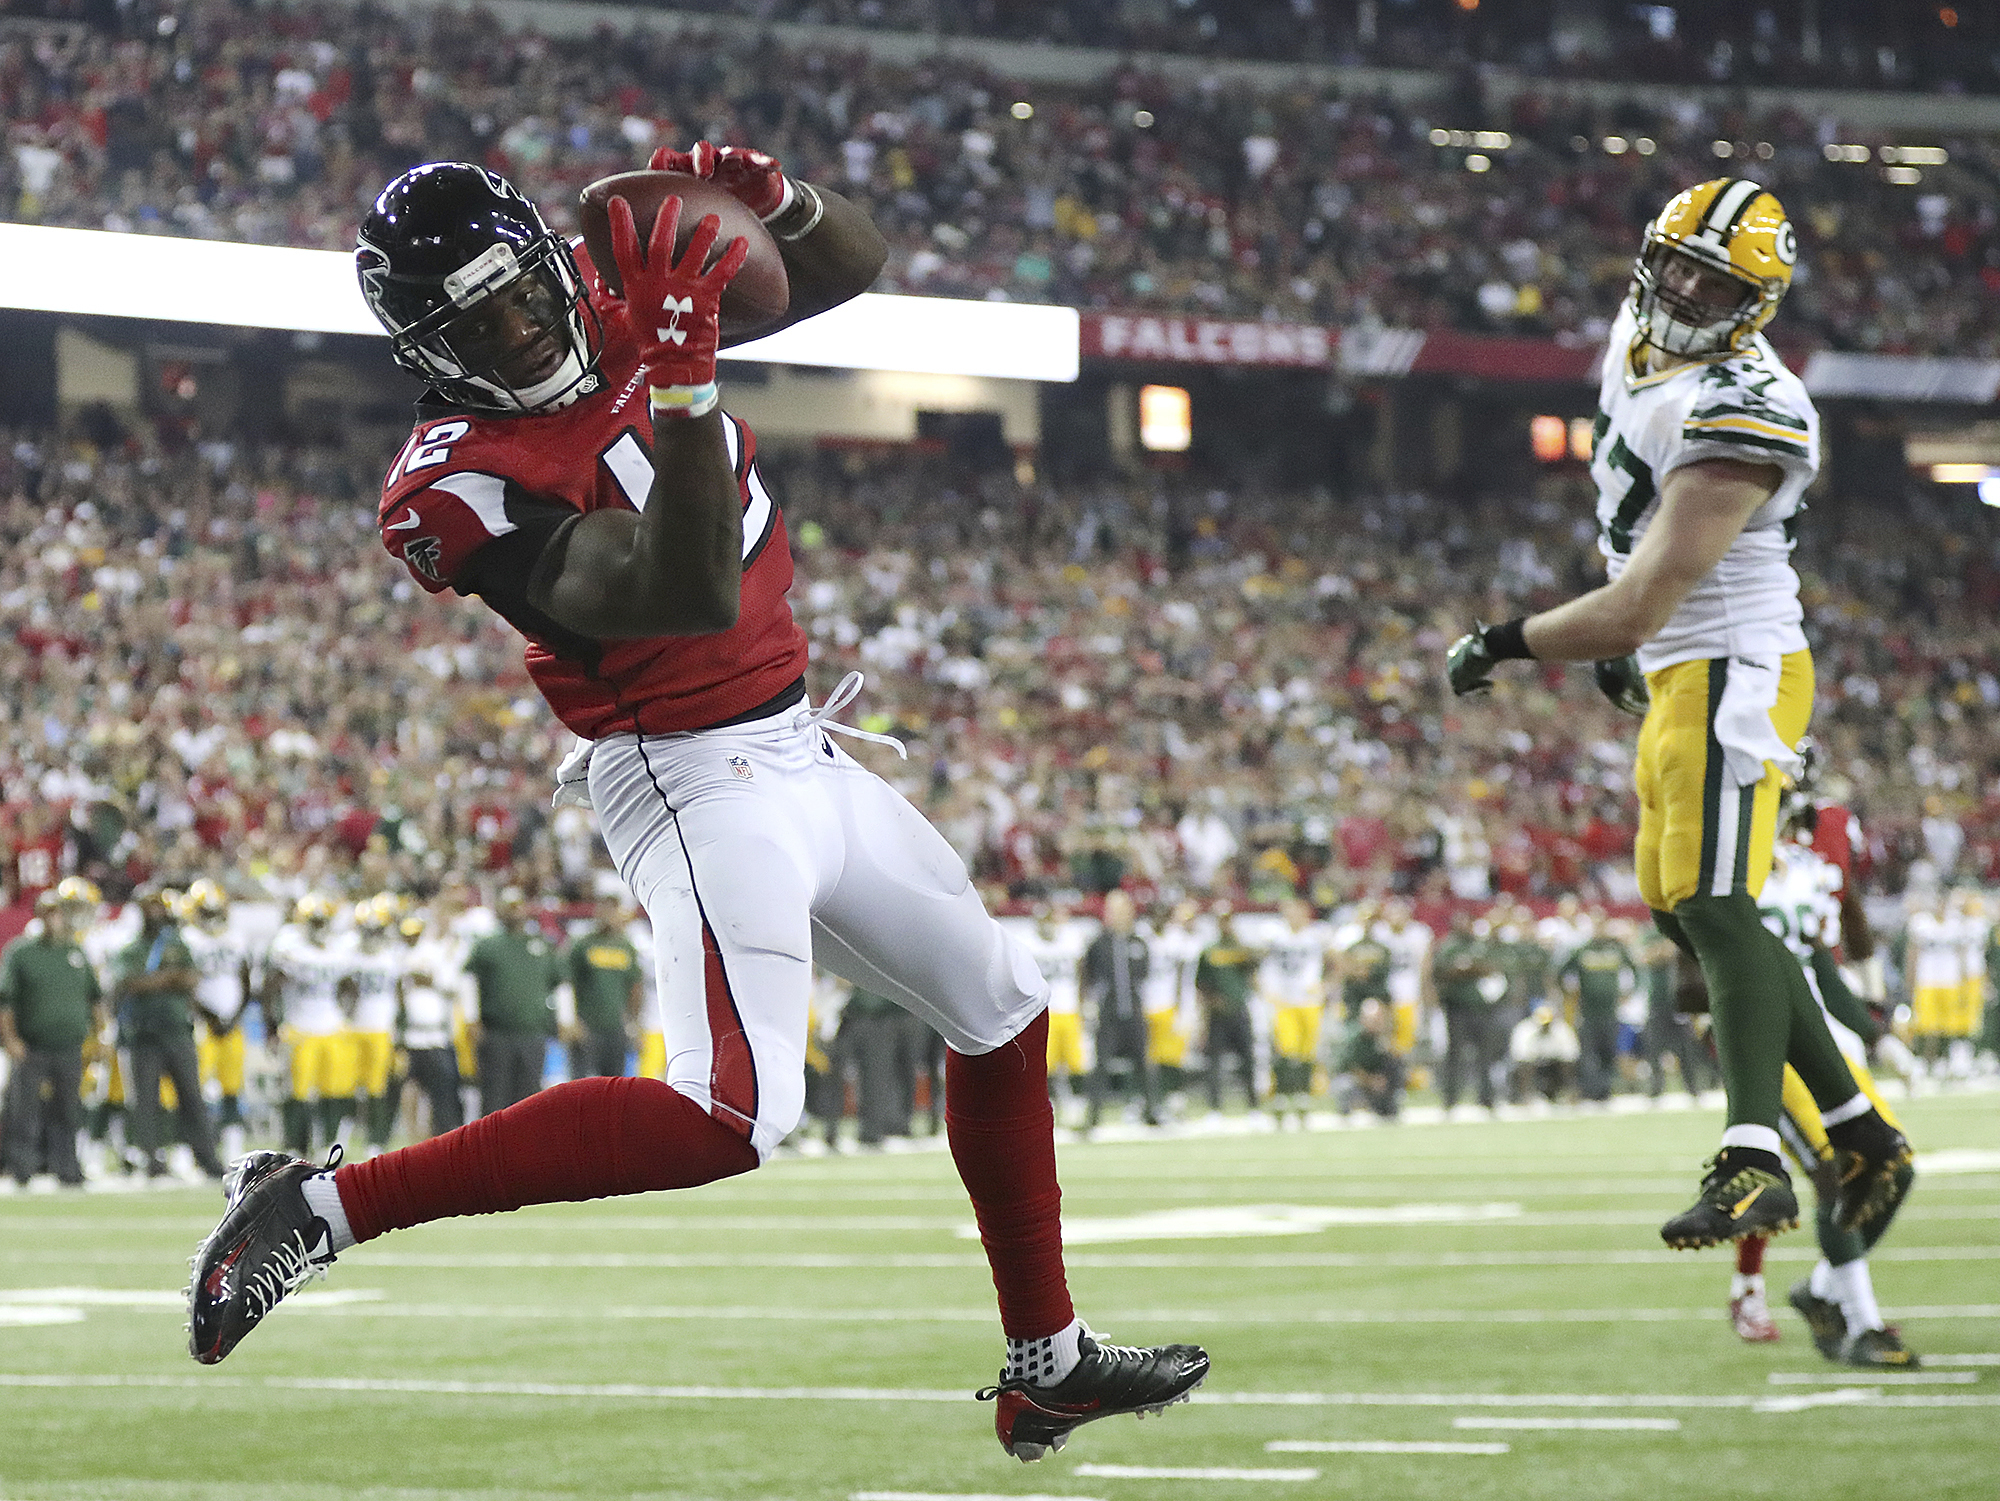 Atlanta Falcons wide receiver Mohamed Sanu catches a touchdown pass from Matt Ryan past Green Bay Packers defender Jake Ryan for a 33-32 victory in an NFL football game on Sunday, Oct. 30, 2016, in Atlanta. (Curtis Compton/Atlanta-Journal Constitution via